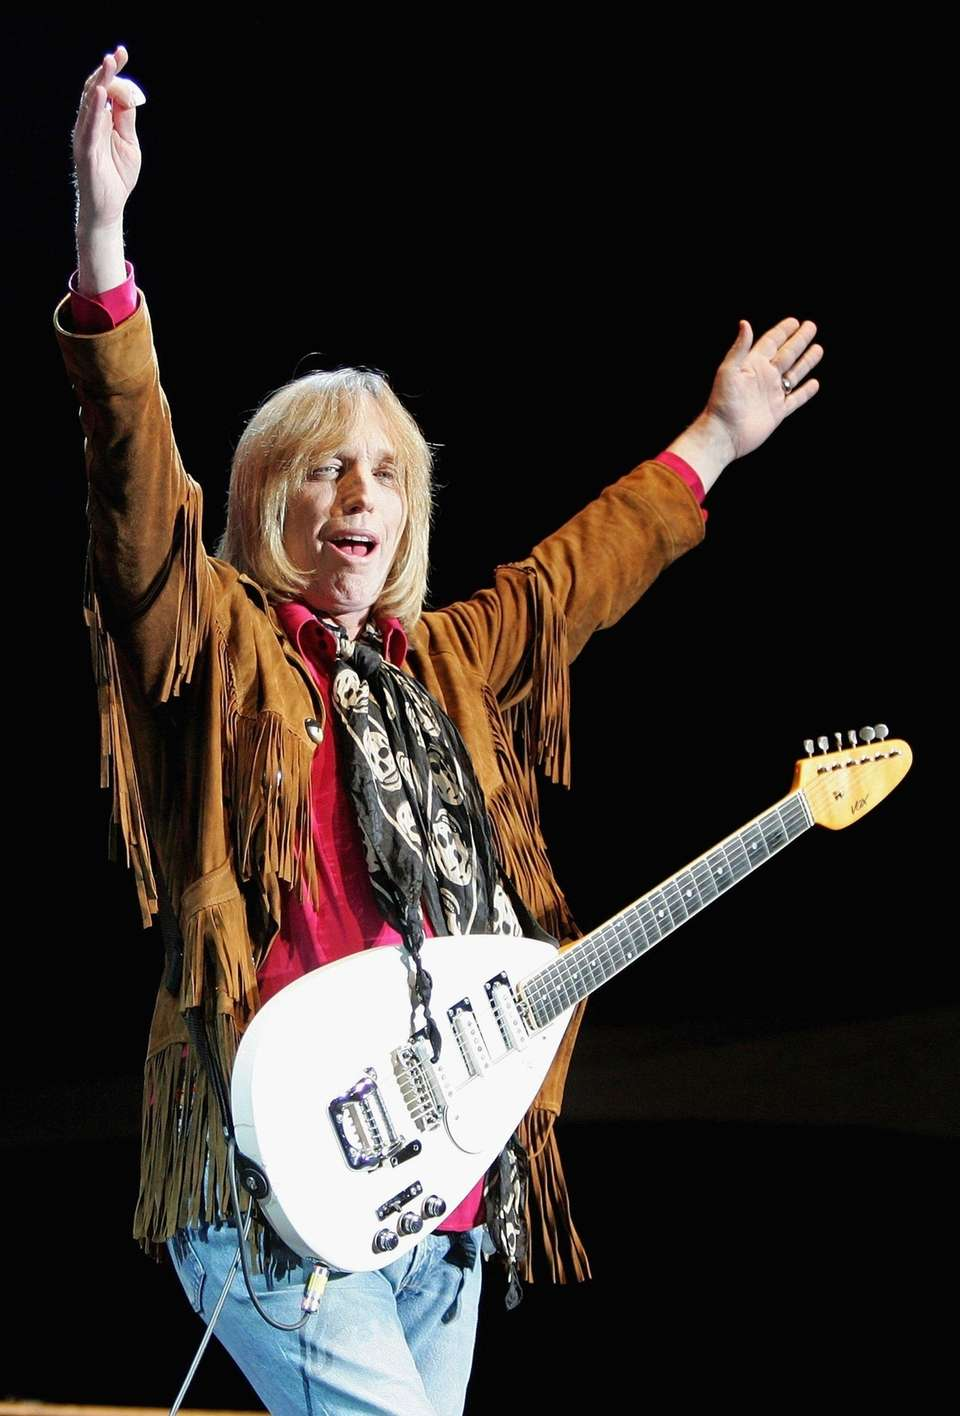 Tom Petty and the Heartbreakers perform at the